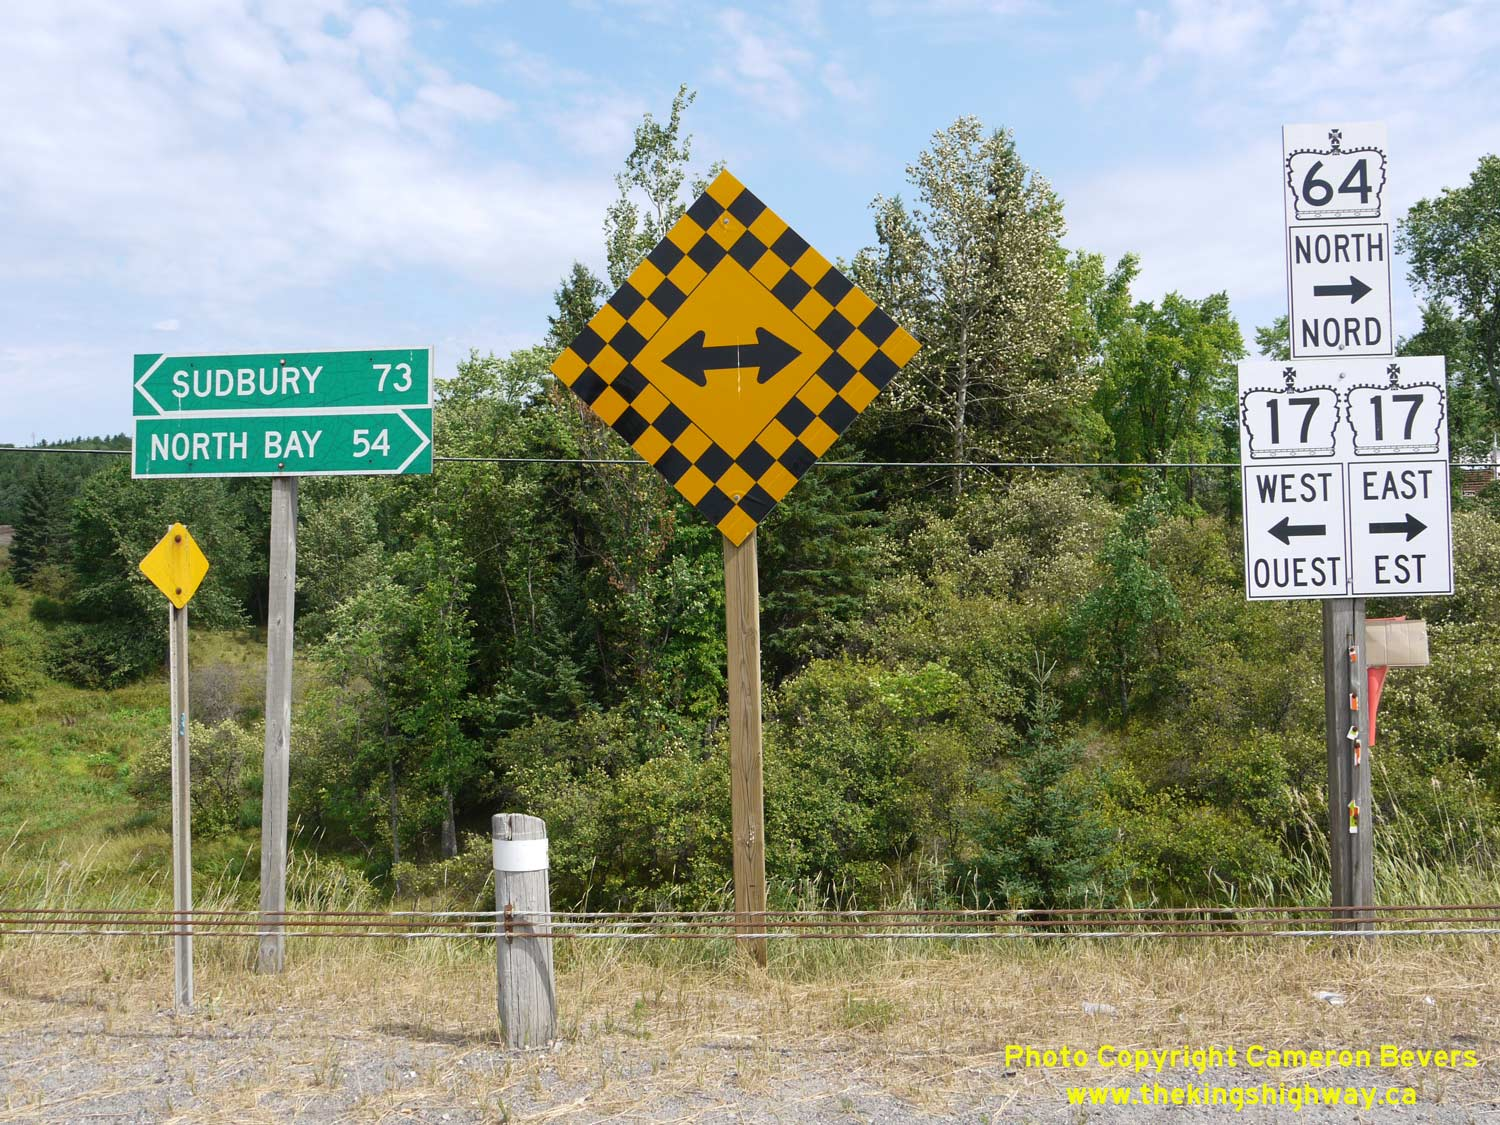 Ontario Highway 17 Photographs - Page 11 - History of